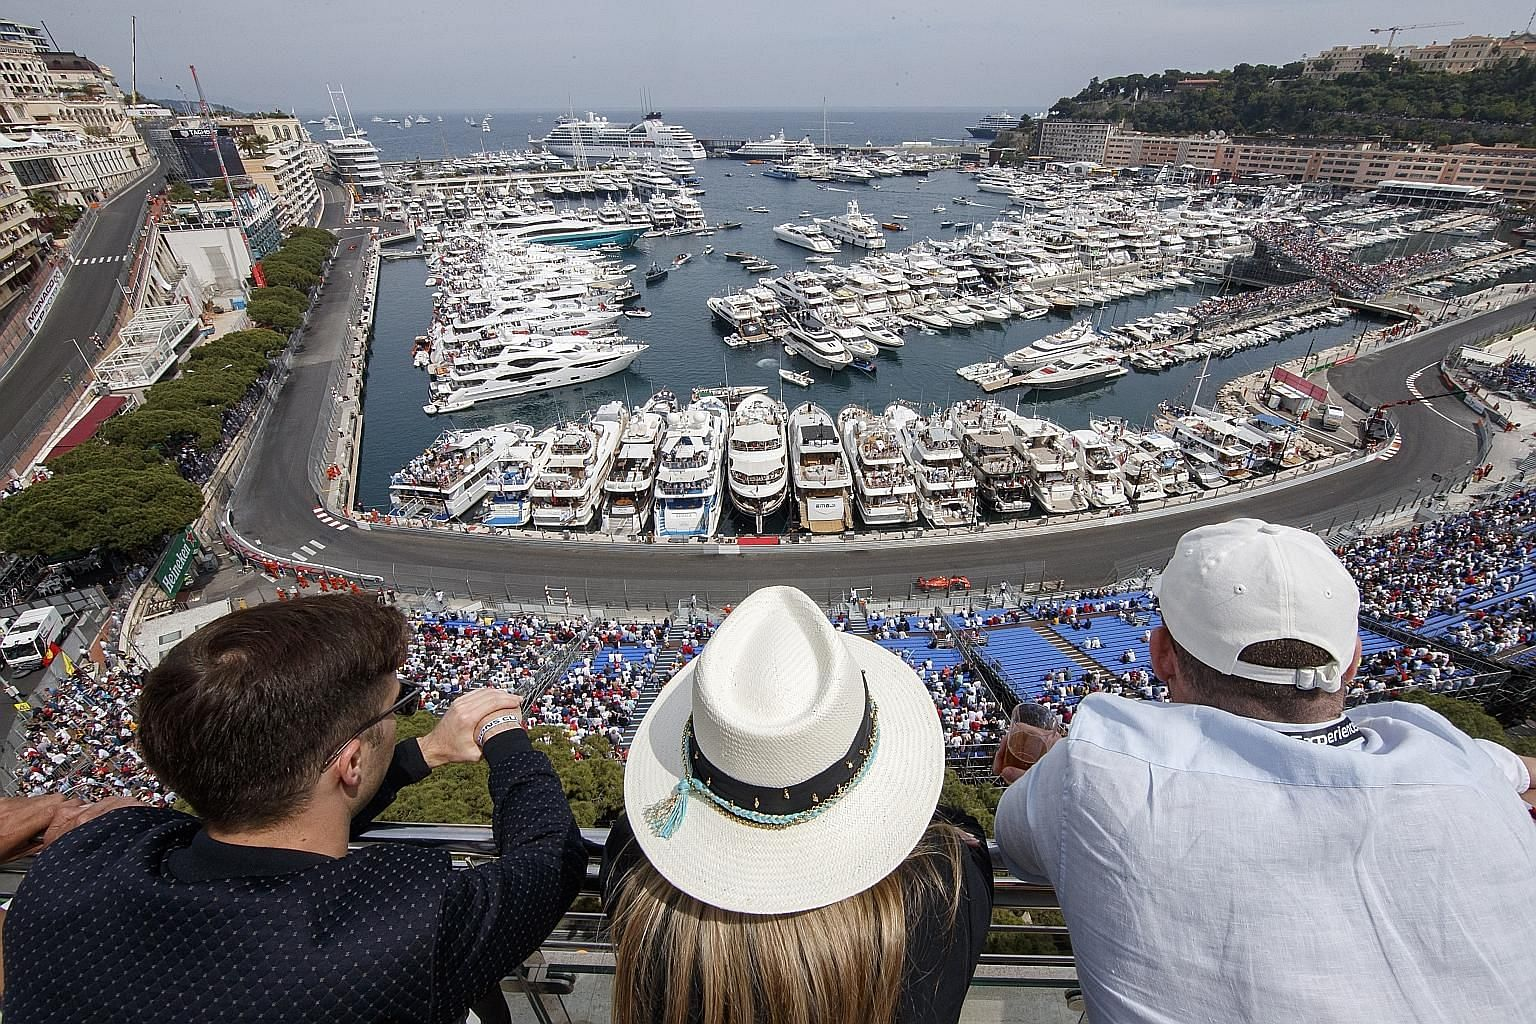 For the first time since 1954, the echoes of F1 cars will be missing from the streets of Monte Carlo after the axing of the Monaco Grand Prix.